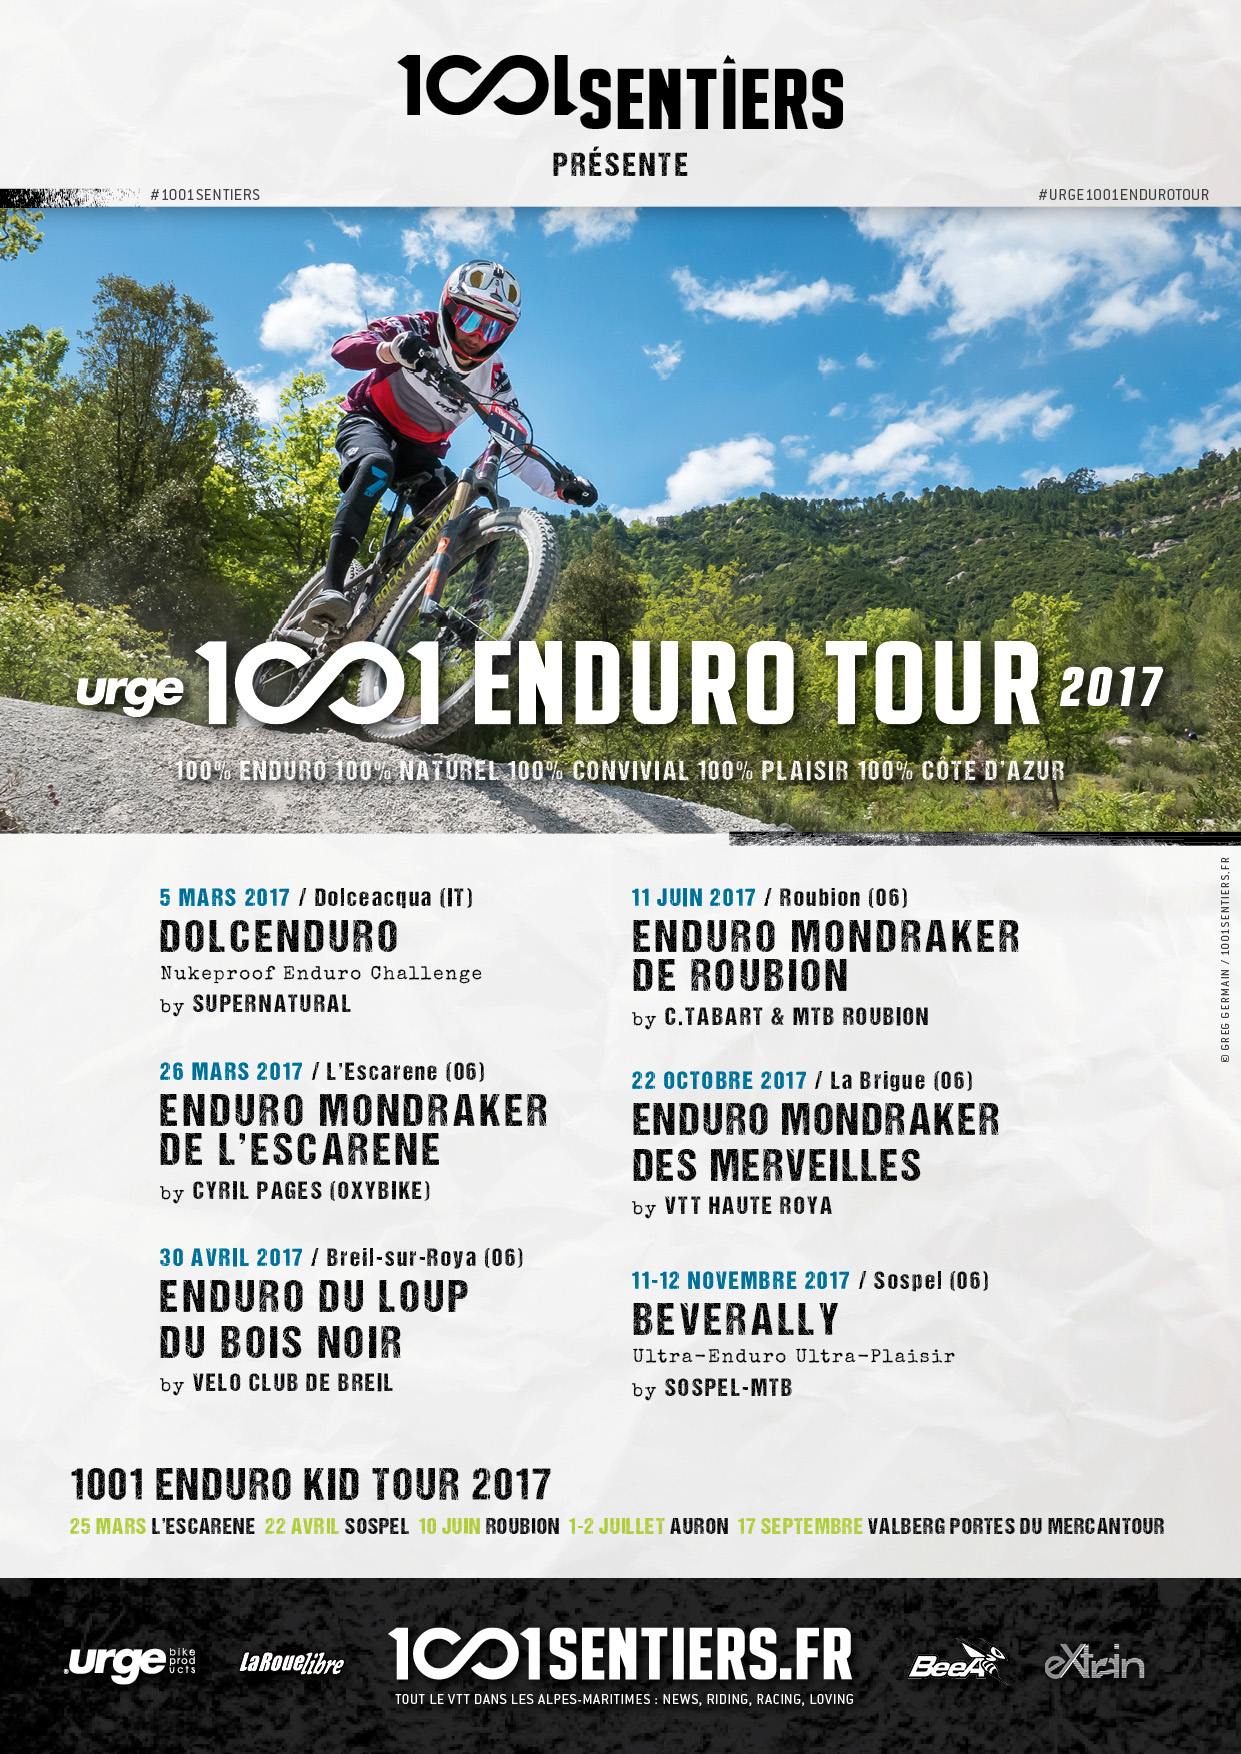 affiche-urge-1001-enduro-tour-2017-web